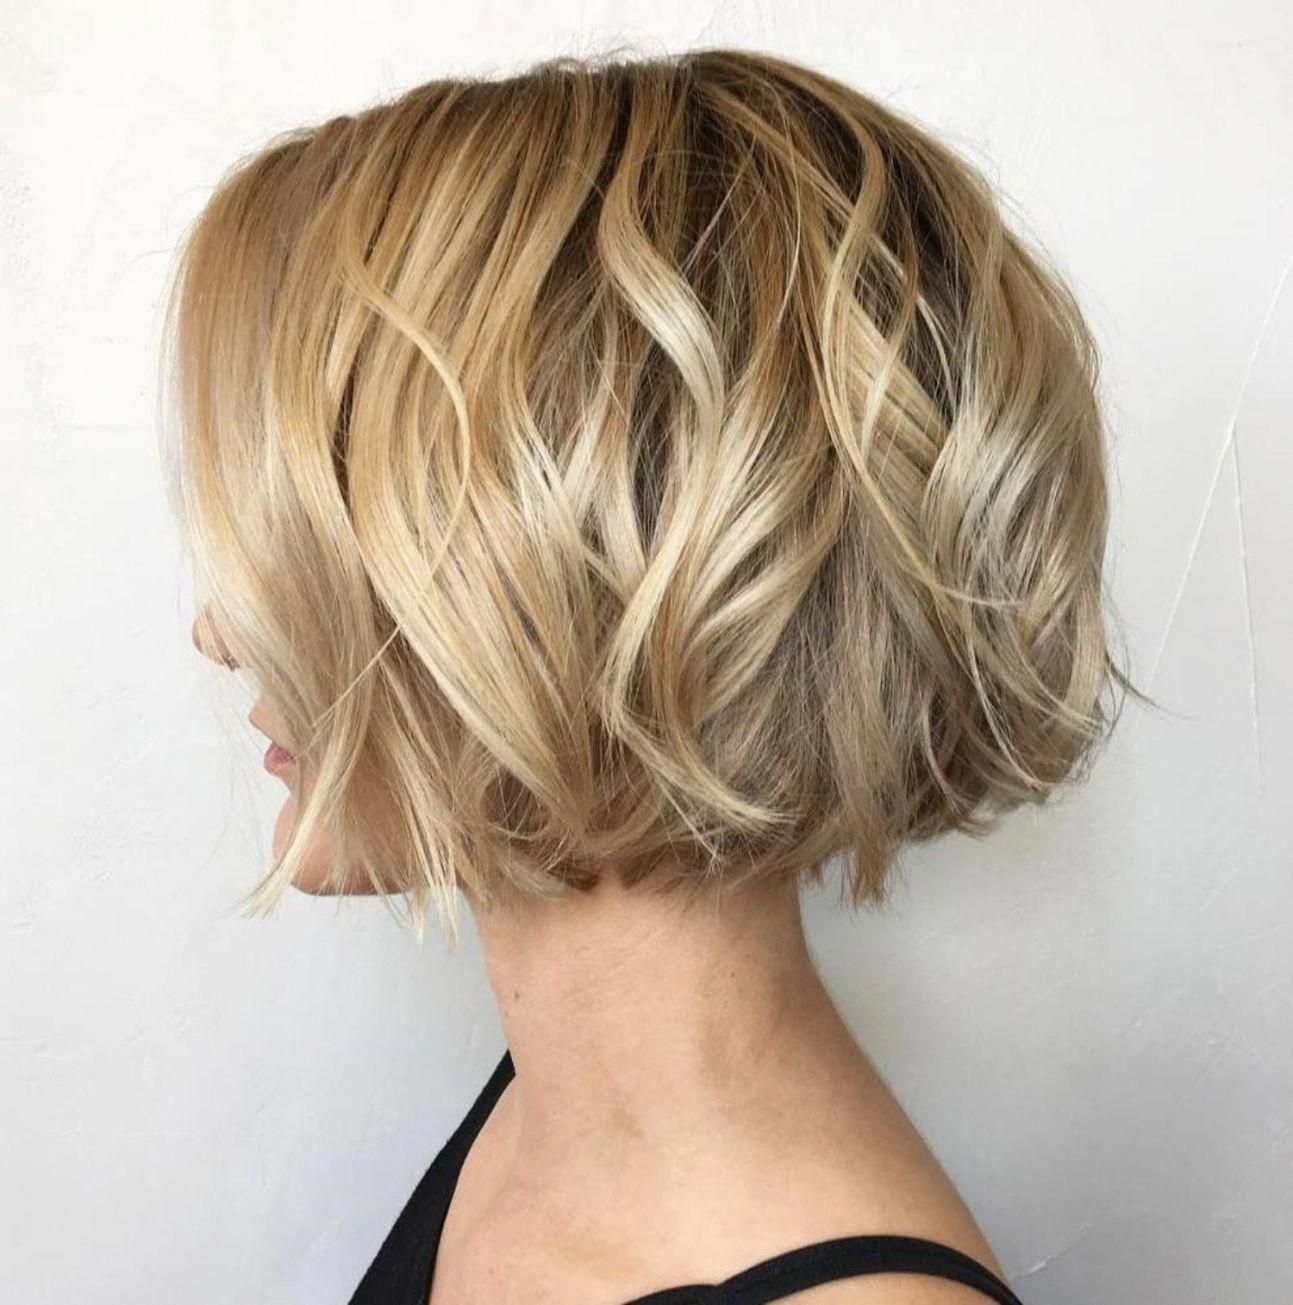 Pin on Misc hair examples